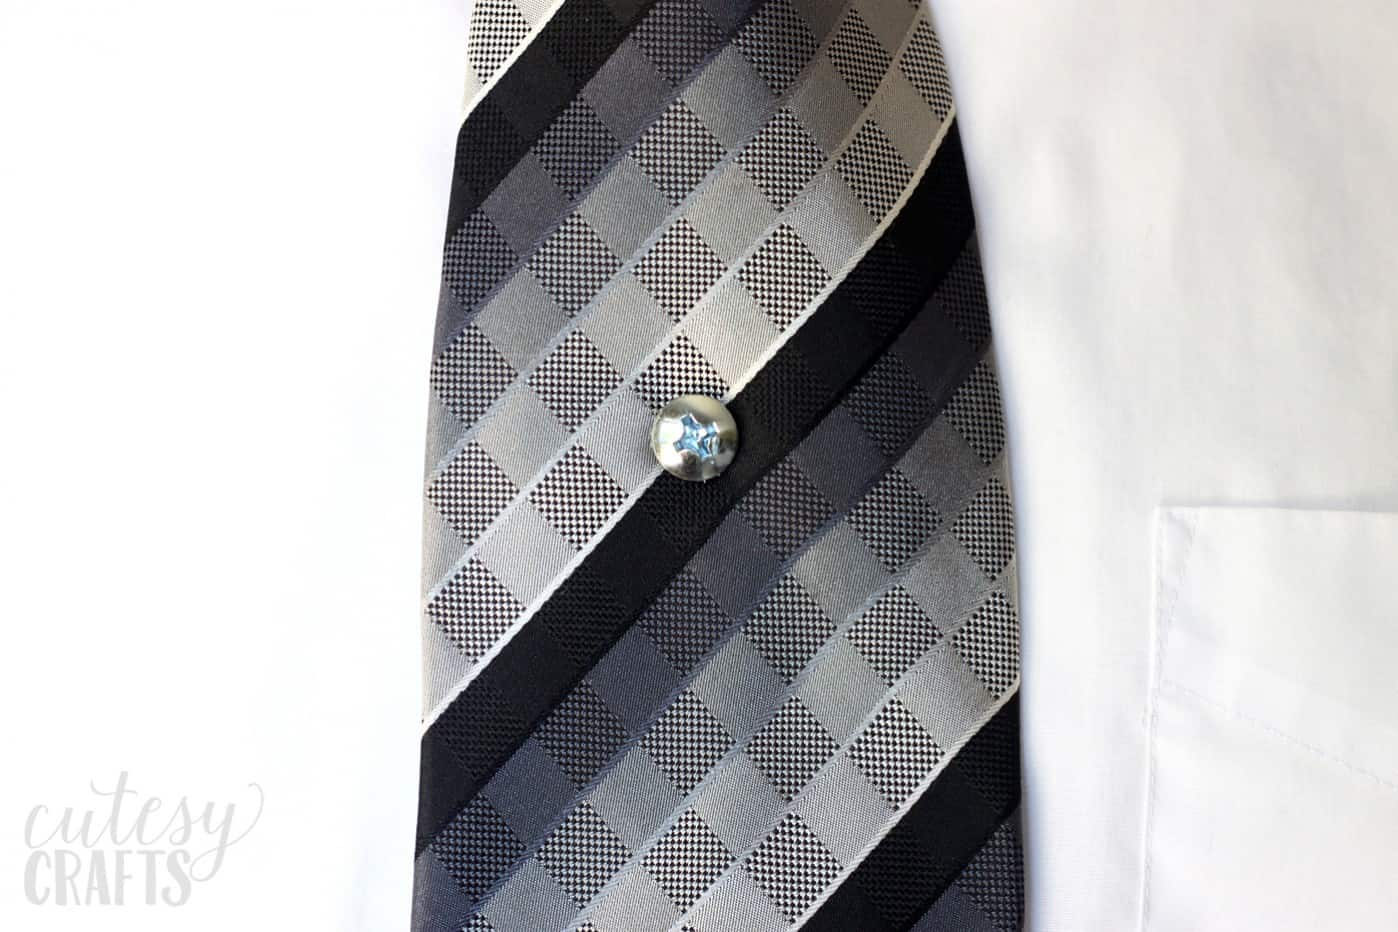 Turn a screw into the coolest tie tack ever - it's easy! Great for any guy that wants to make a statement. This is the perfect gift for Father's Day.